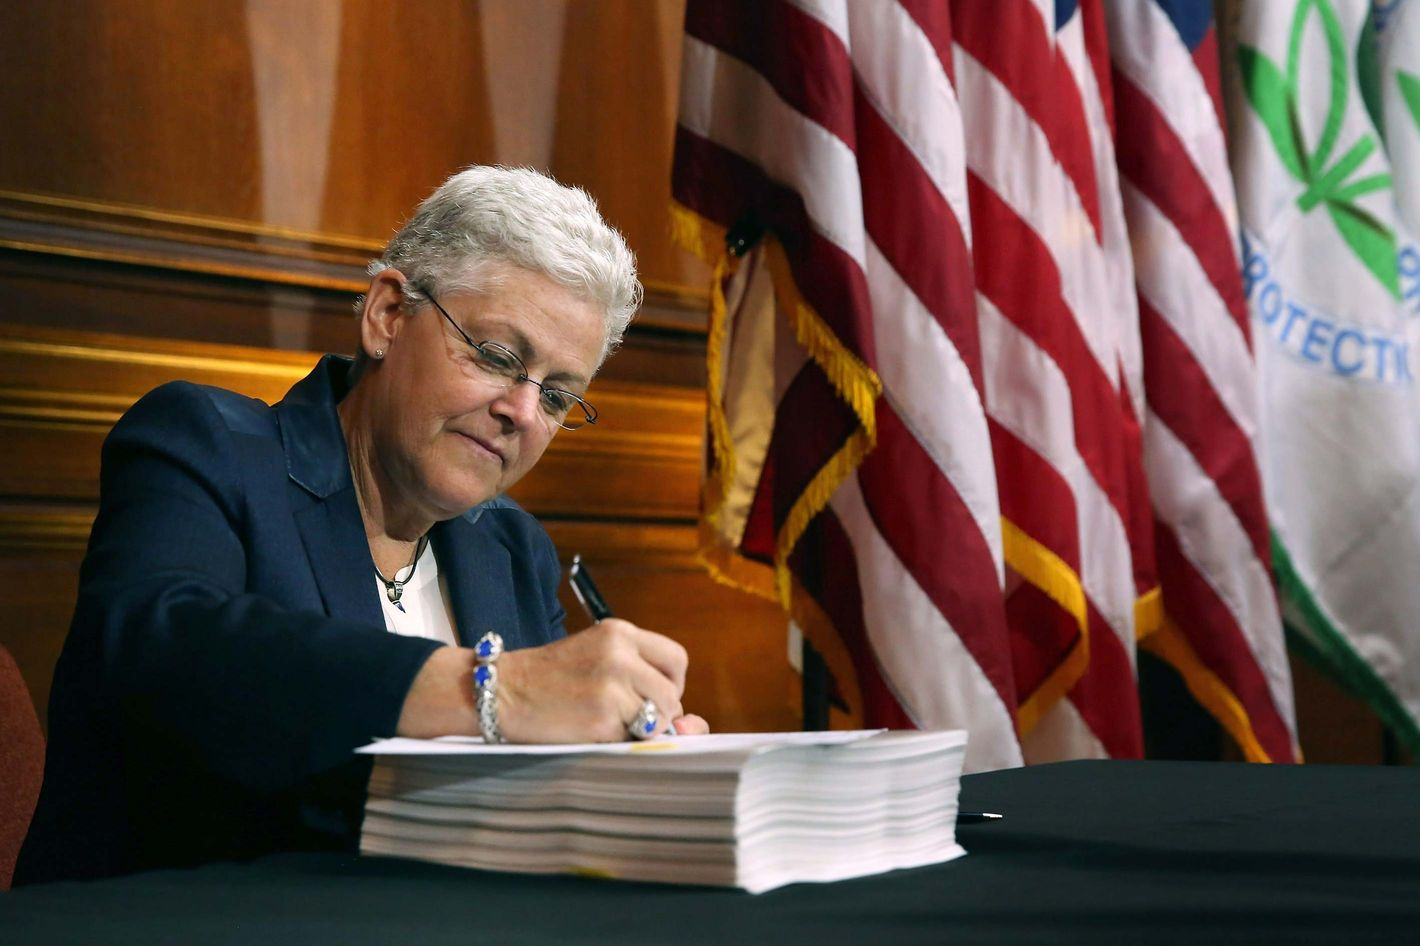 U.S. Environmental Protection Agency Administrator Gina McCarthy signs new regulations for power plants June 2, 2014 in Washington, DC. Bypassing Congress and using President Barack Obama's 'Climate Action Plan,' the new regulations will force more than 600 existing coal-fired power plants, the single largest source of greenhouse gas emission in the country, to reduce their carbon pollution 30 percent from 2005 levels by 2030.